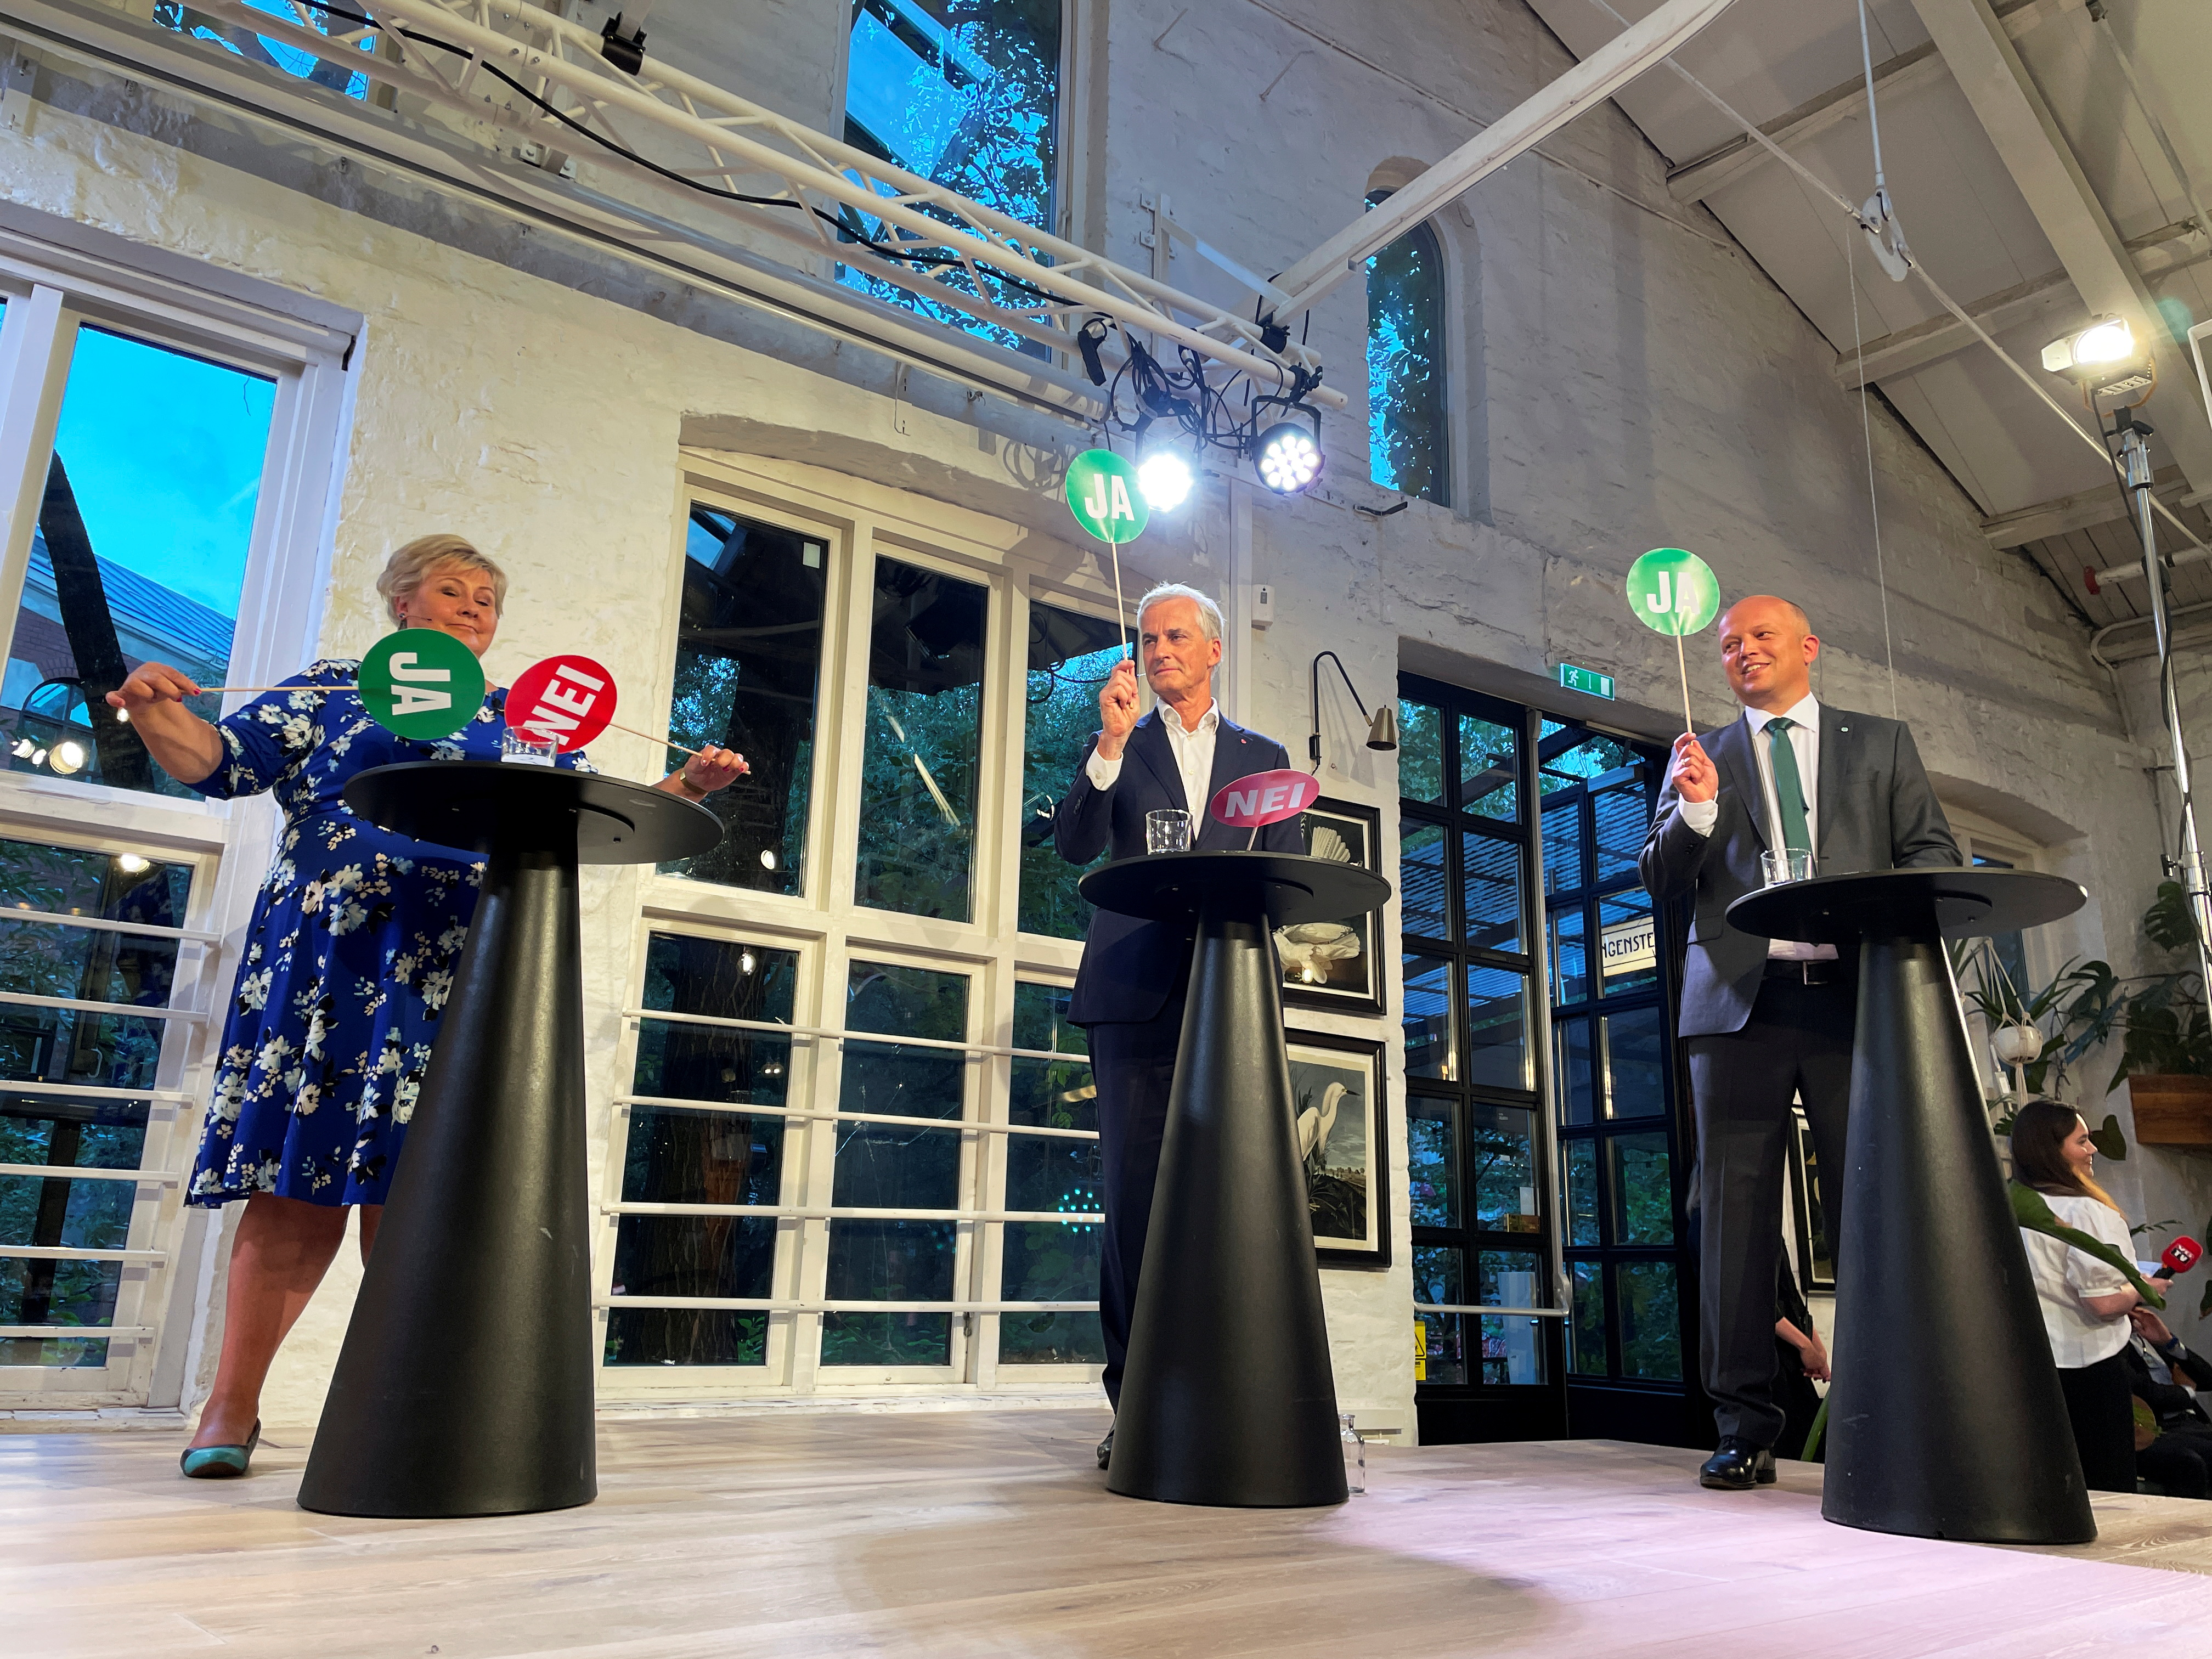 The three candidates for Norway's prime minister Erna Solberg from the Conservatives, Jonas Gahr Stoere from Labour Party and Trygve Slagsvold Vedum from the Centre Party attend a debate in central Oslo, Norway August 9, 2021. Picture taken August 9, 2021. REUTERS/Gwladys Fouche